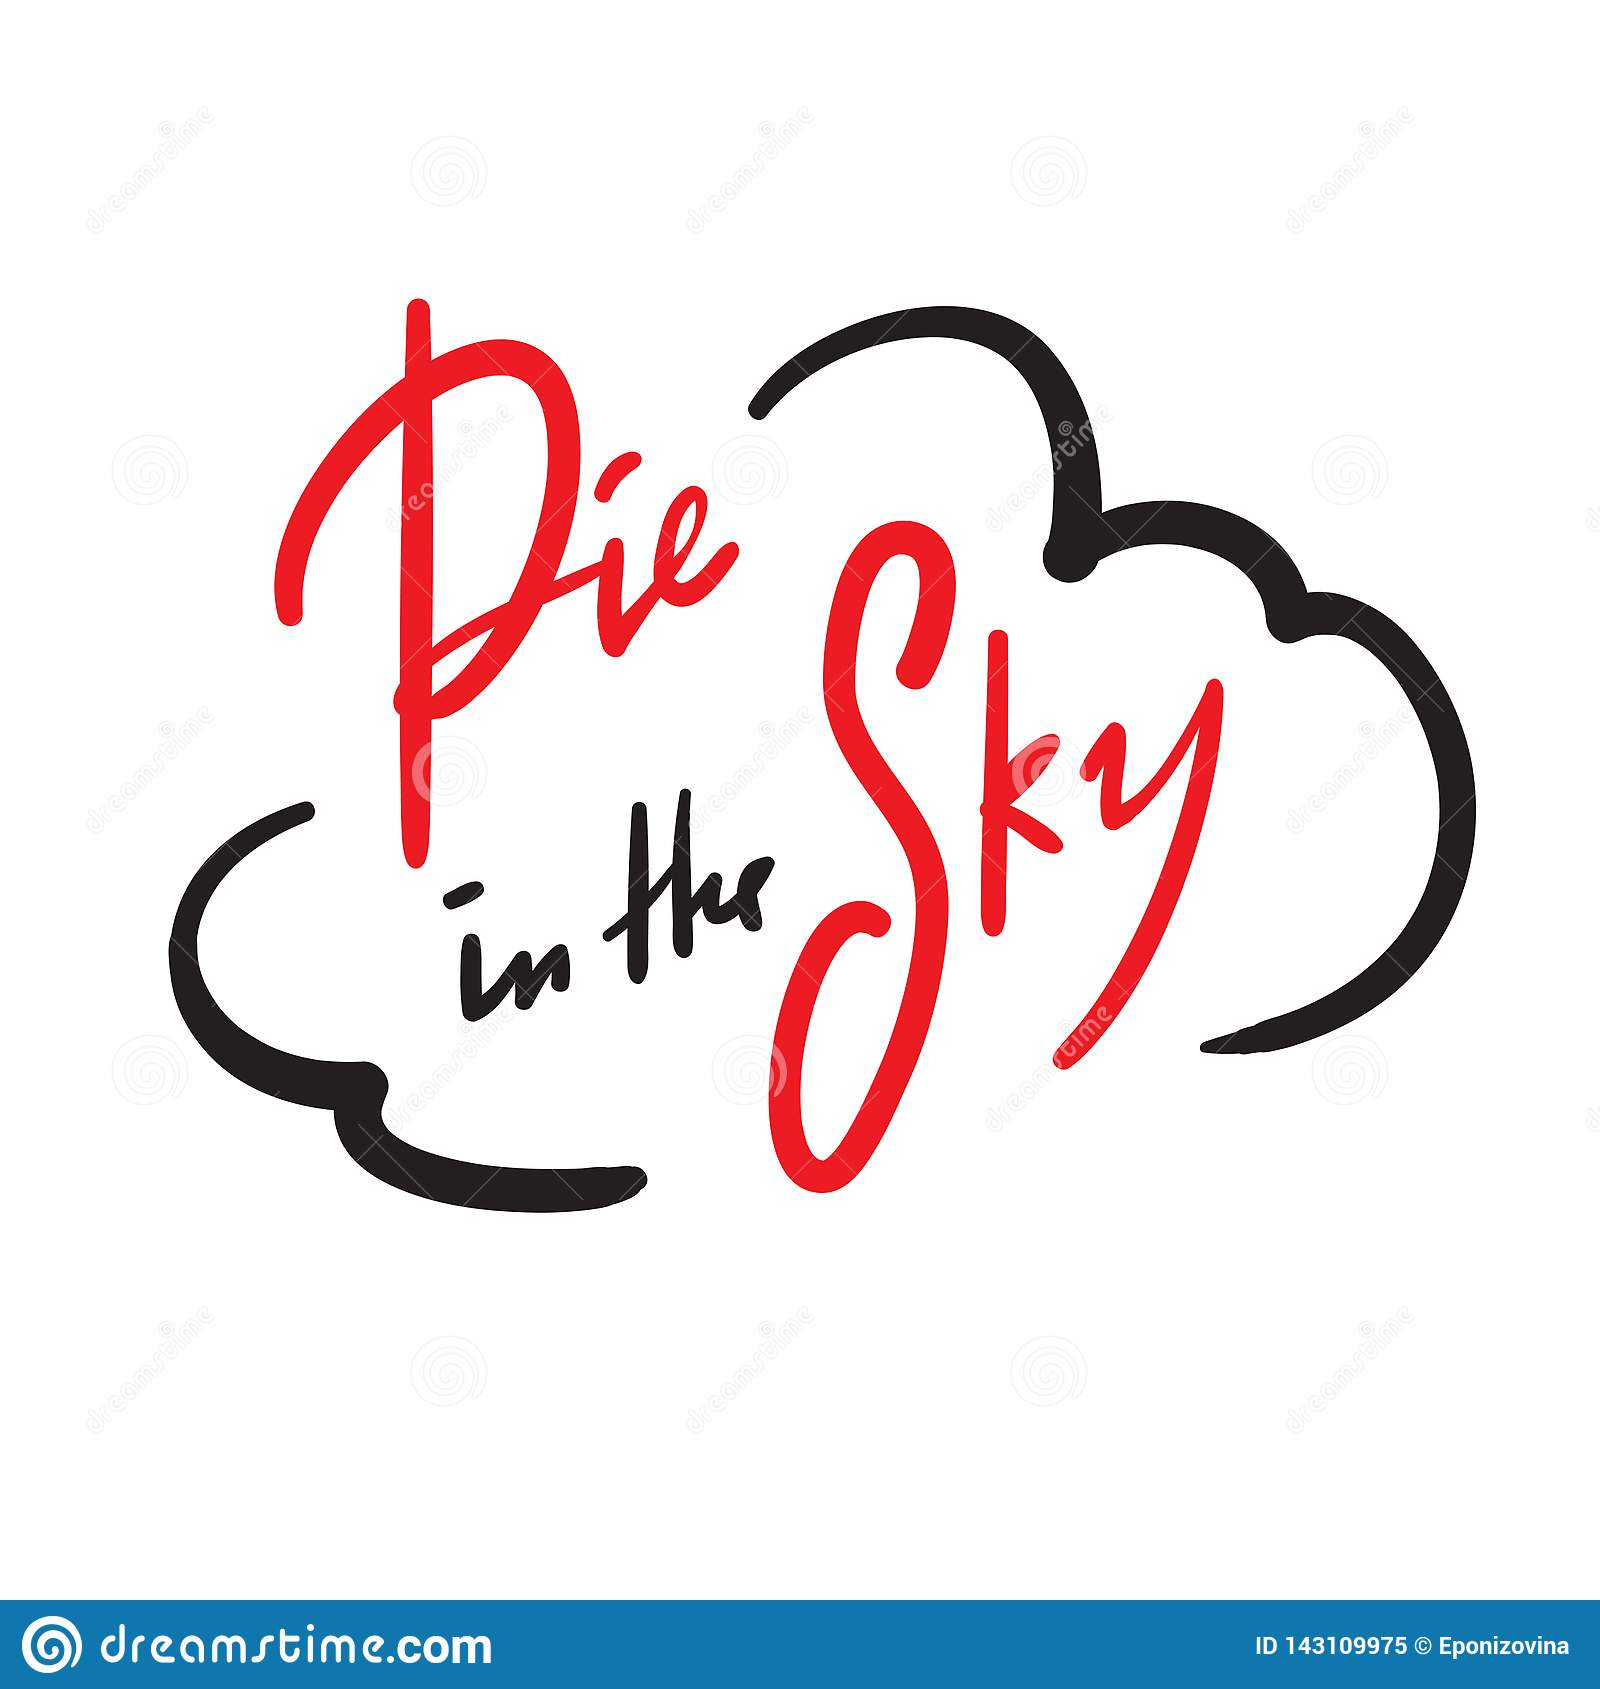 Pie in the sky - simple inspire and motivational quote. Handwritten phrase. Slang. Print